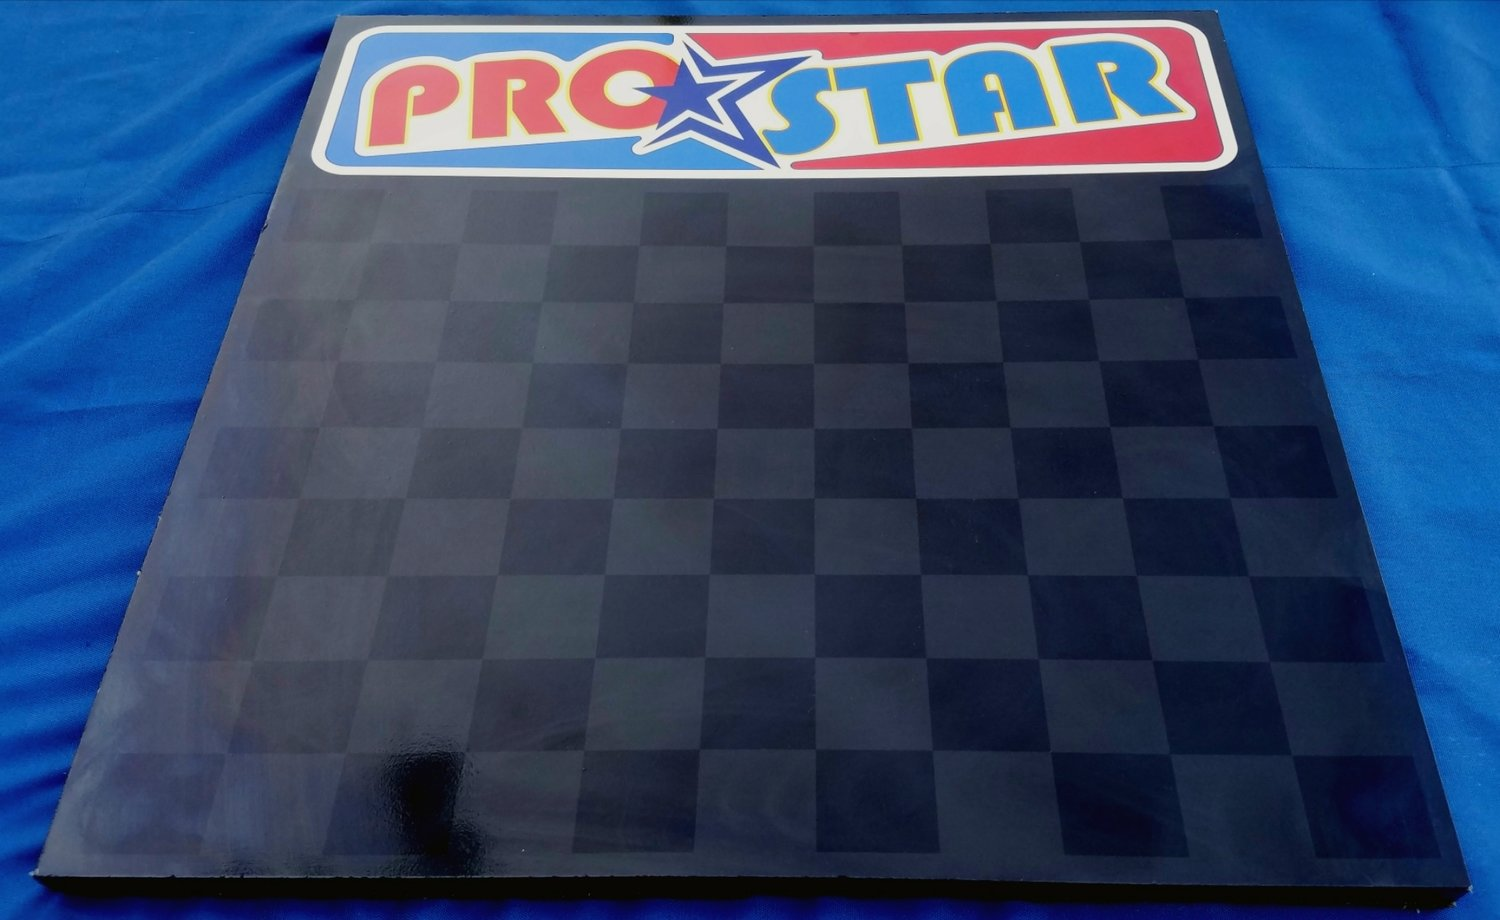 PROSTAR CHECKERED SETUP BOARD - PRE-ORDER